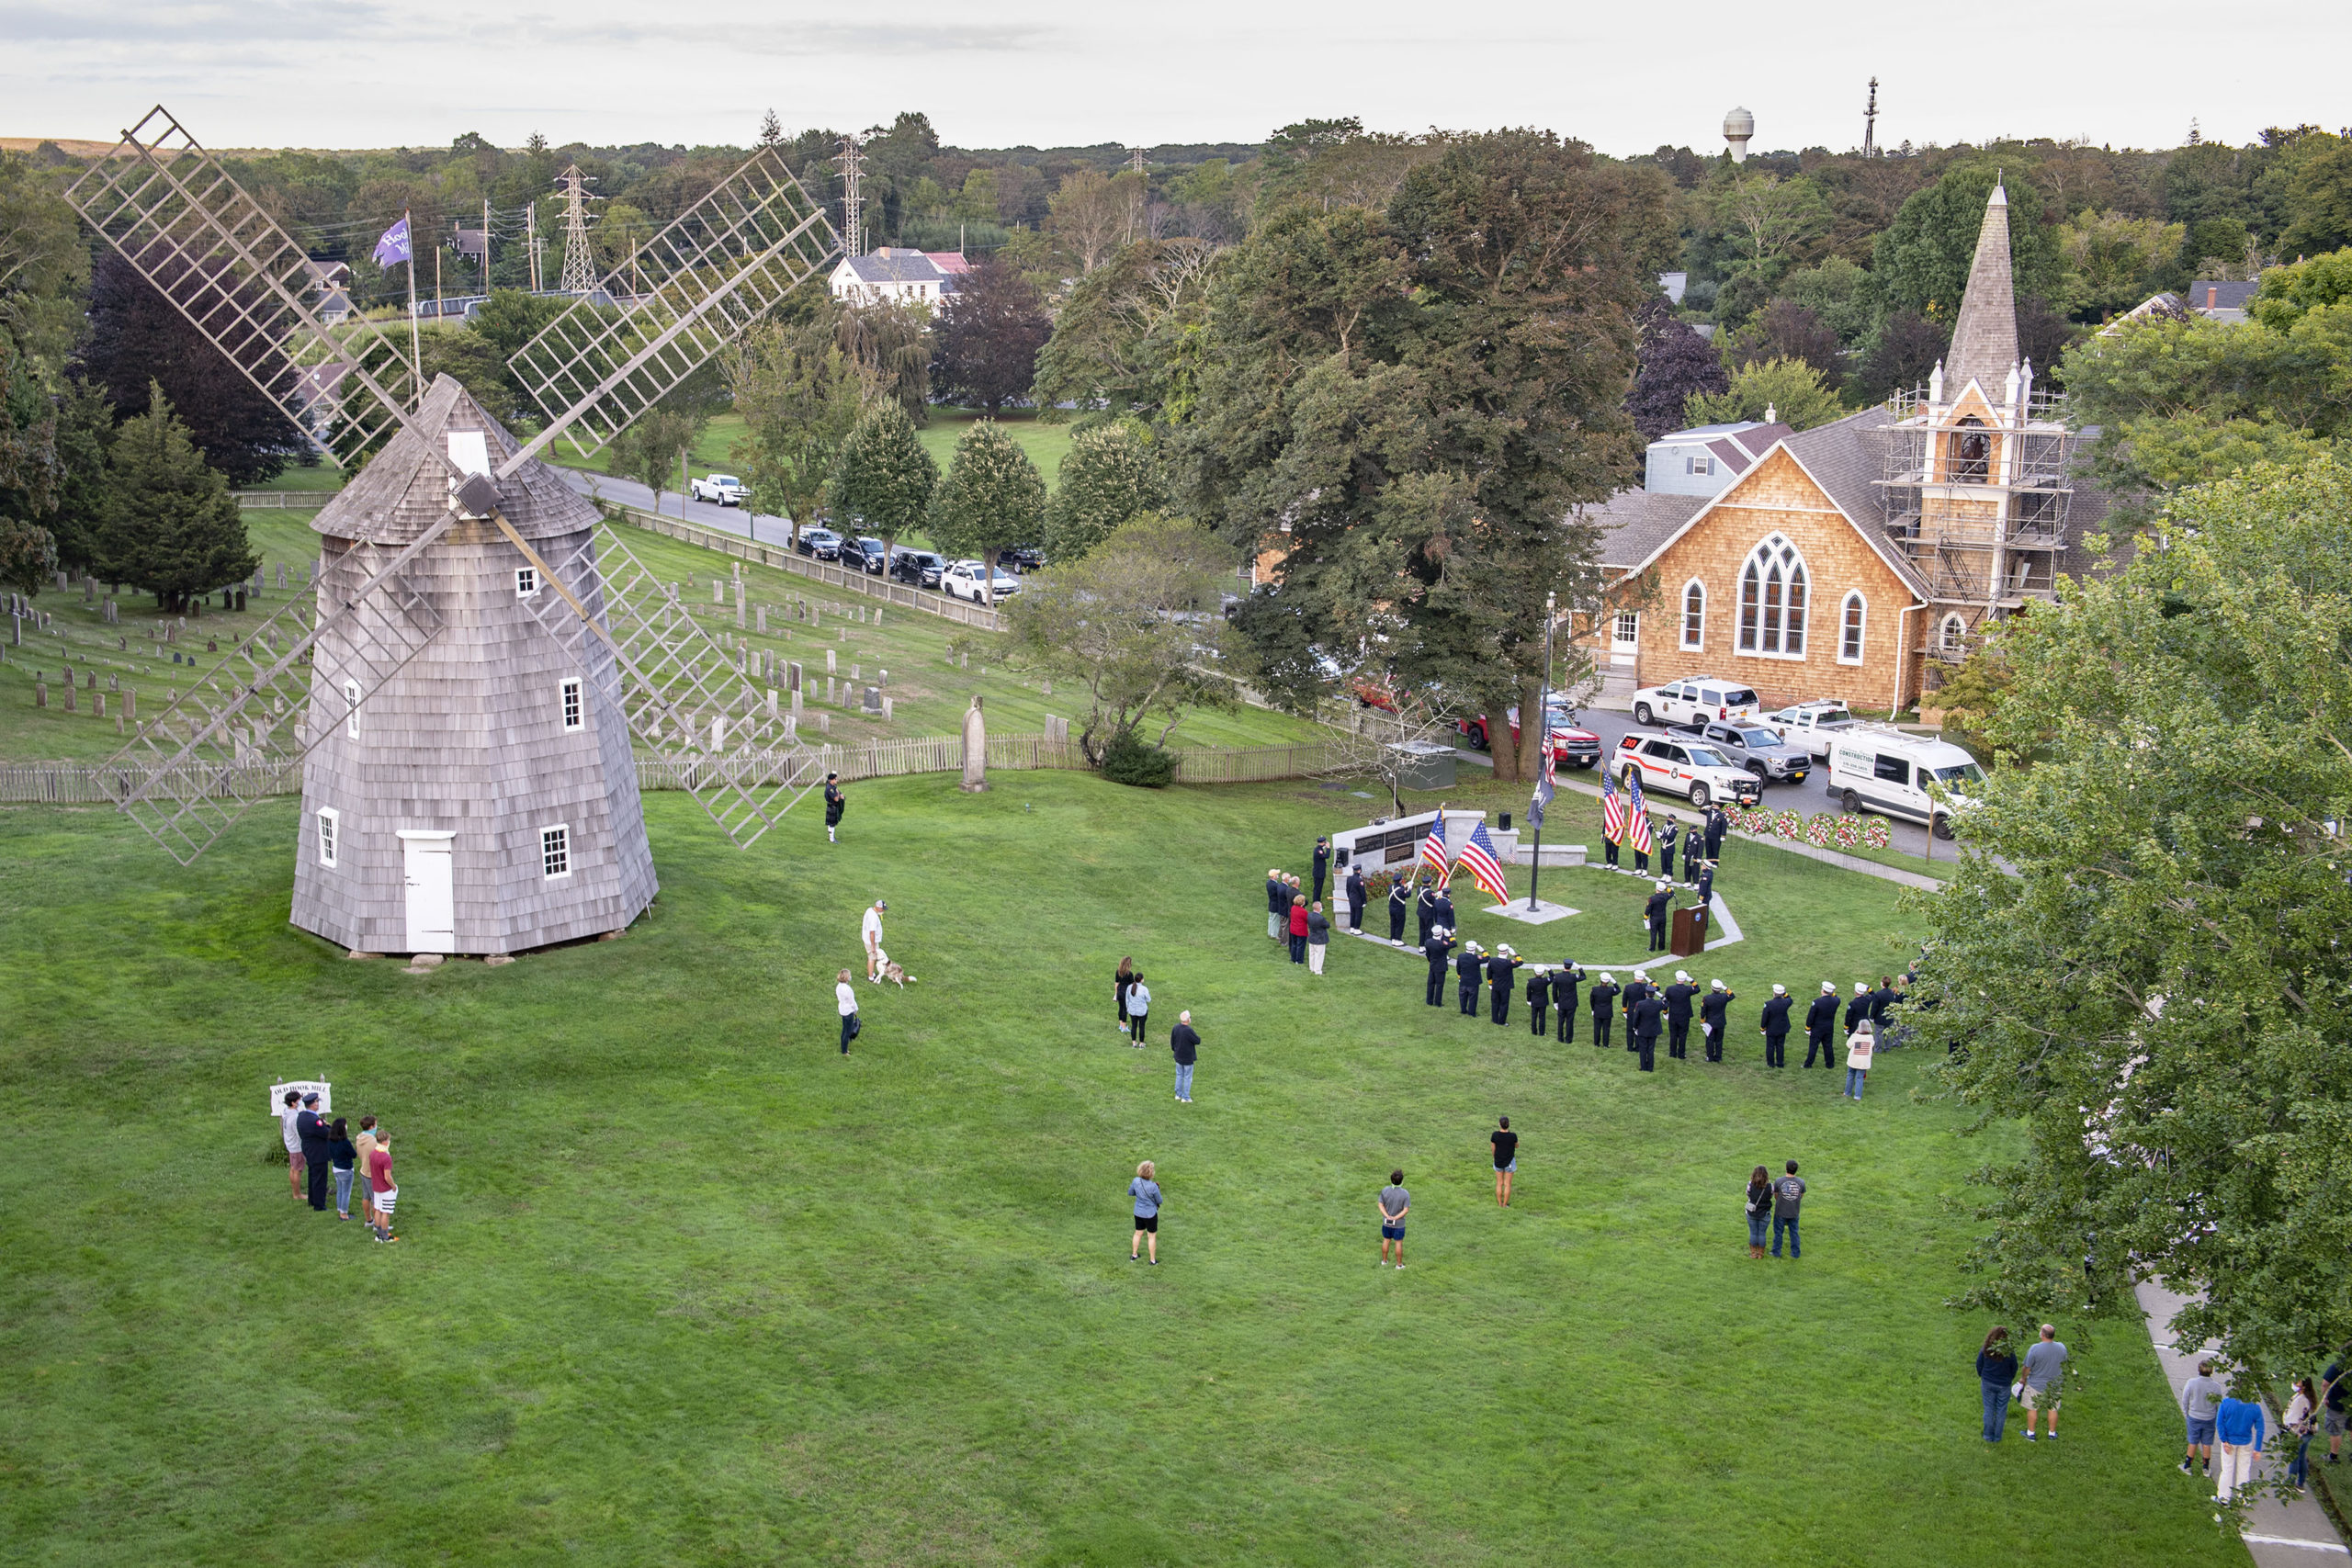 Members of the East End Fire, EMS and Police Departments held a memorial service on the village green in East Hampton commemorating the 19th anniversary of the September 11, 2001 terrorist attacks.